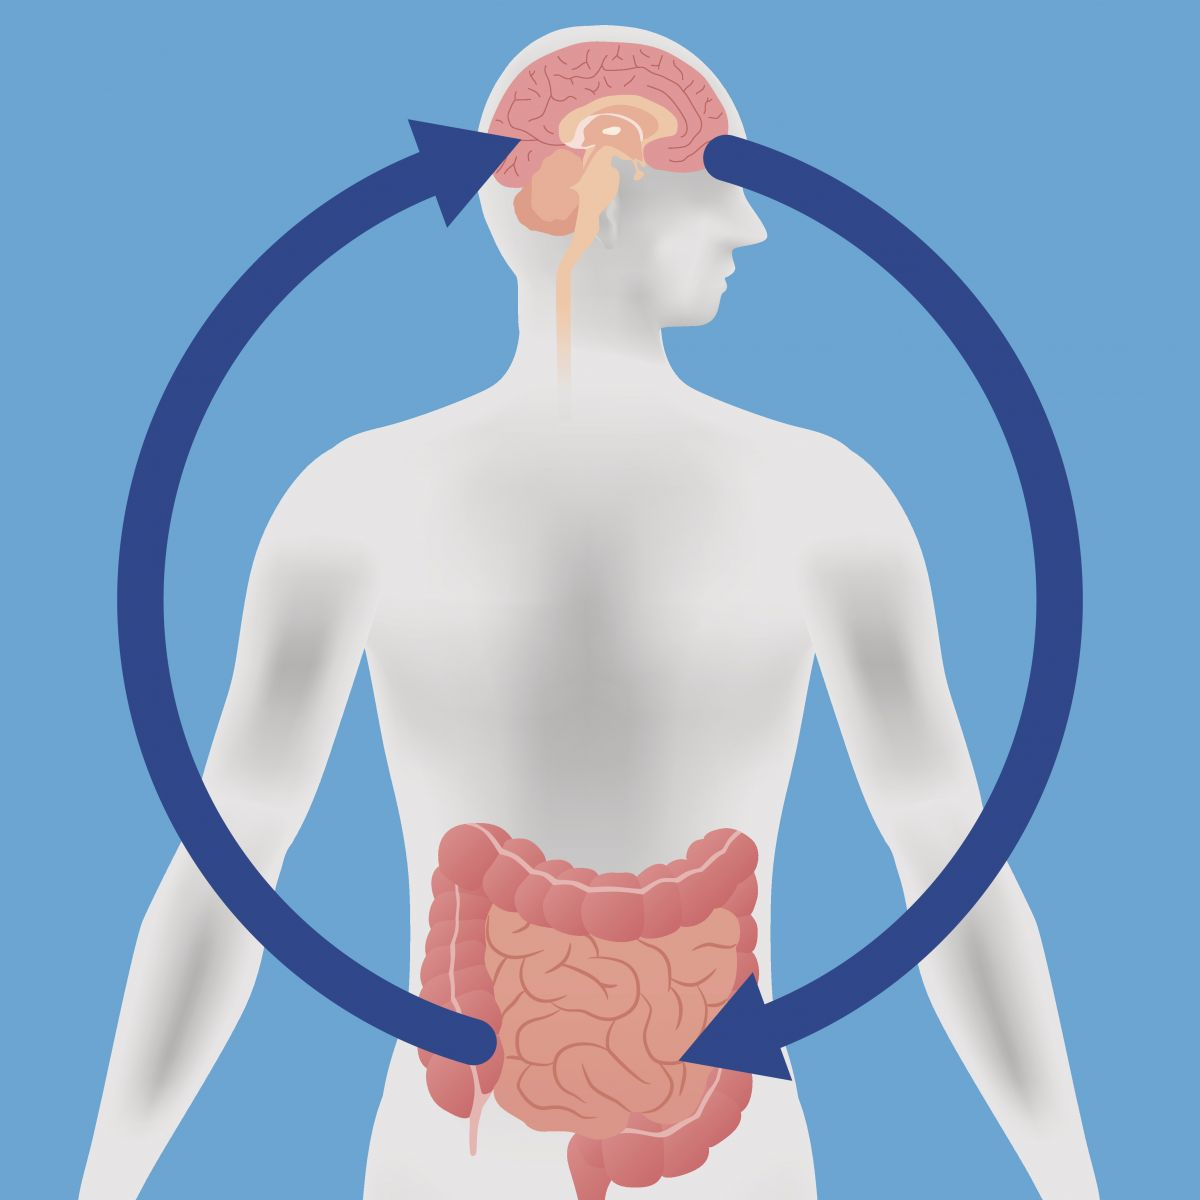 Probiotics may help boost mood and cognitive function